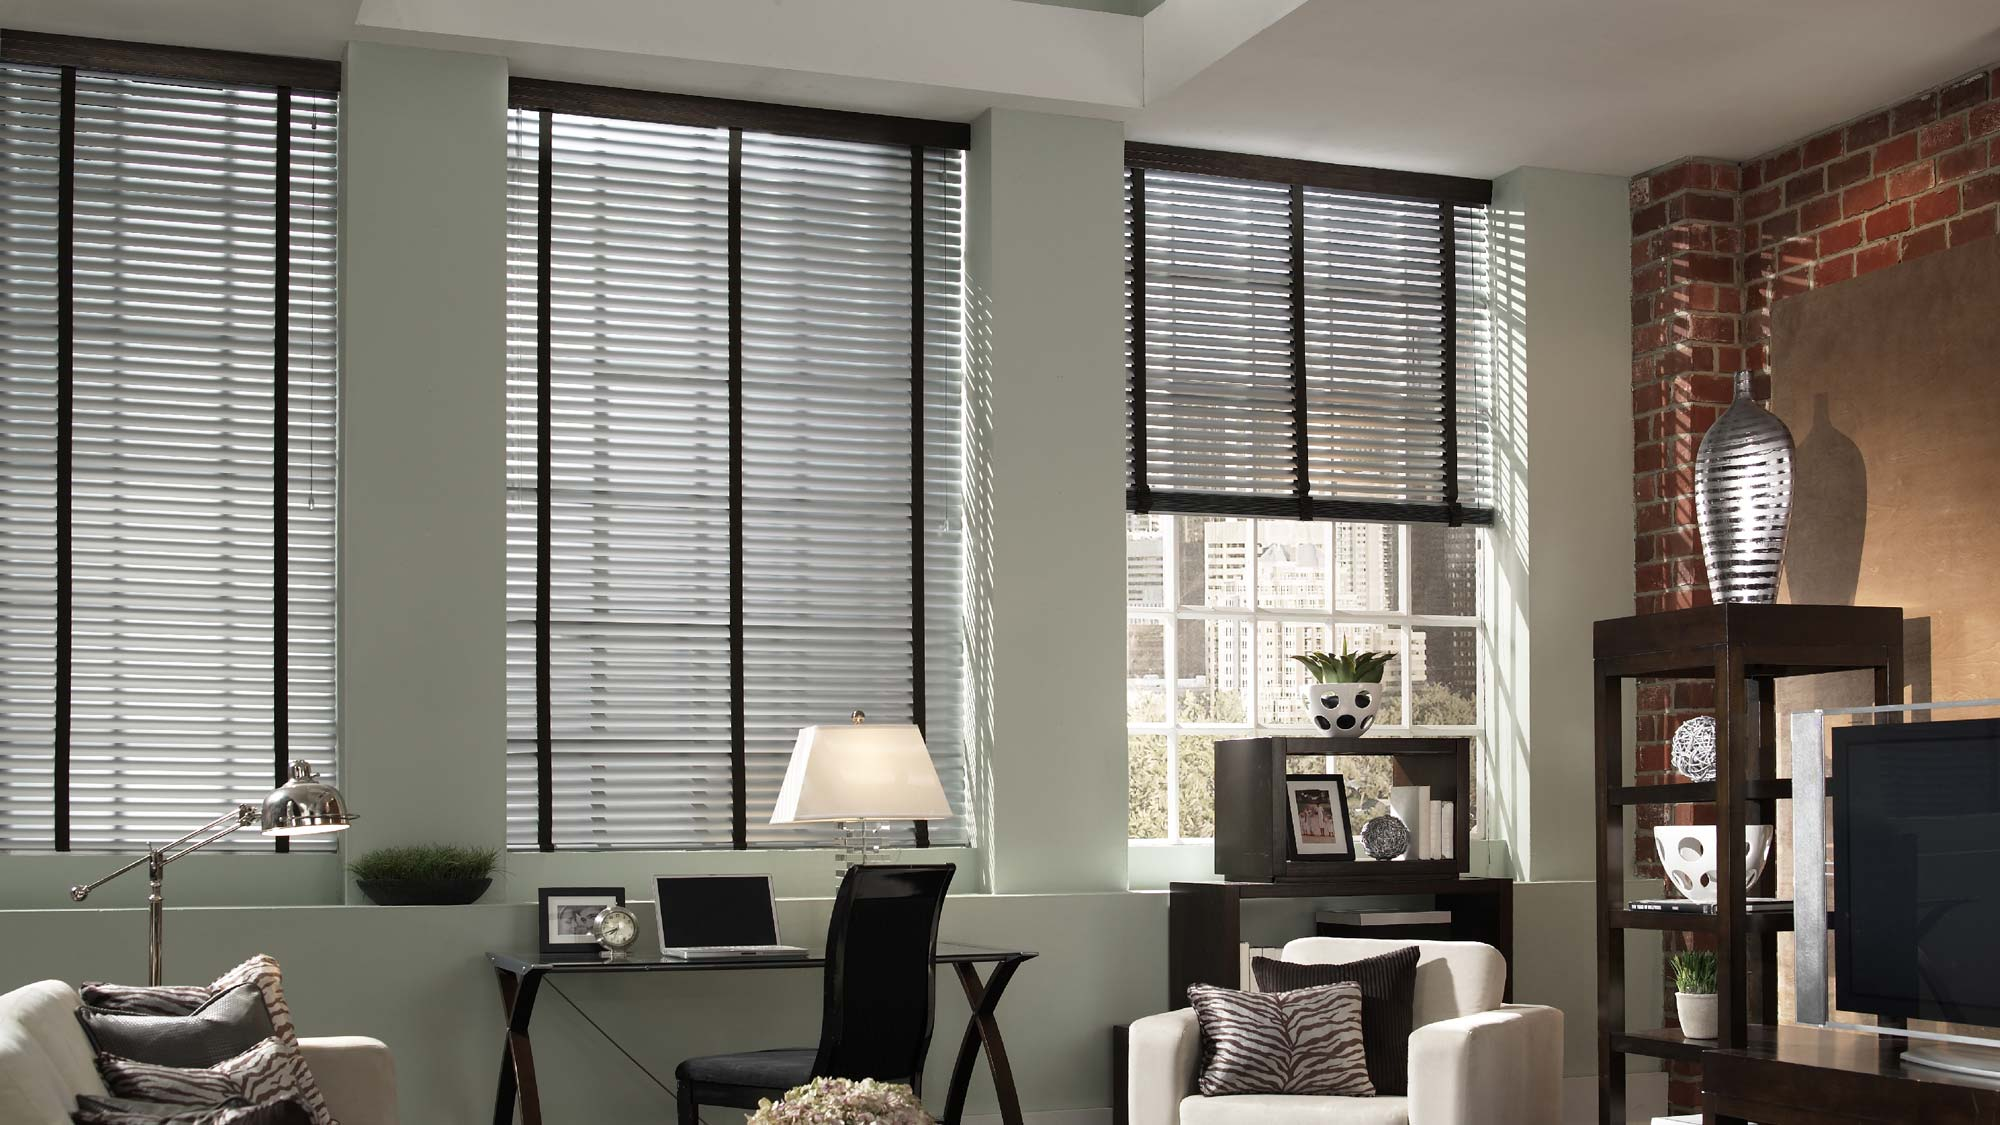 Dark Classic Collection® Aluminum Blinds with Embellishment Trim Banding in an office with a chair that has Interior Masterpieces® Custom Pillows